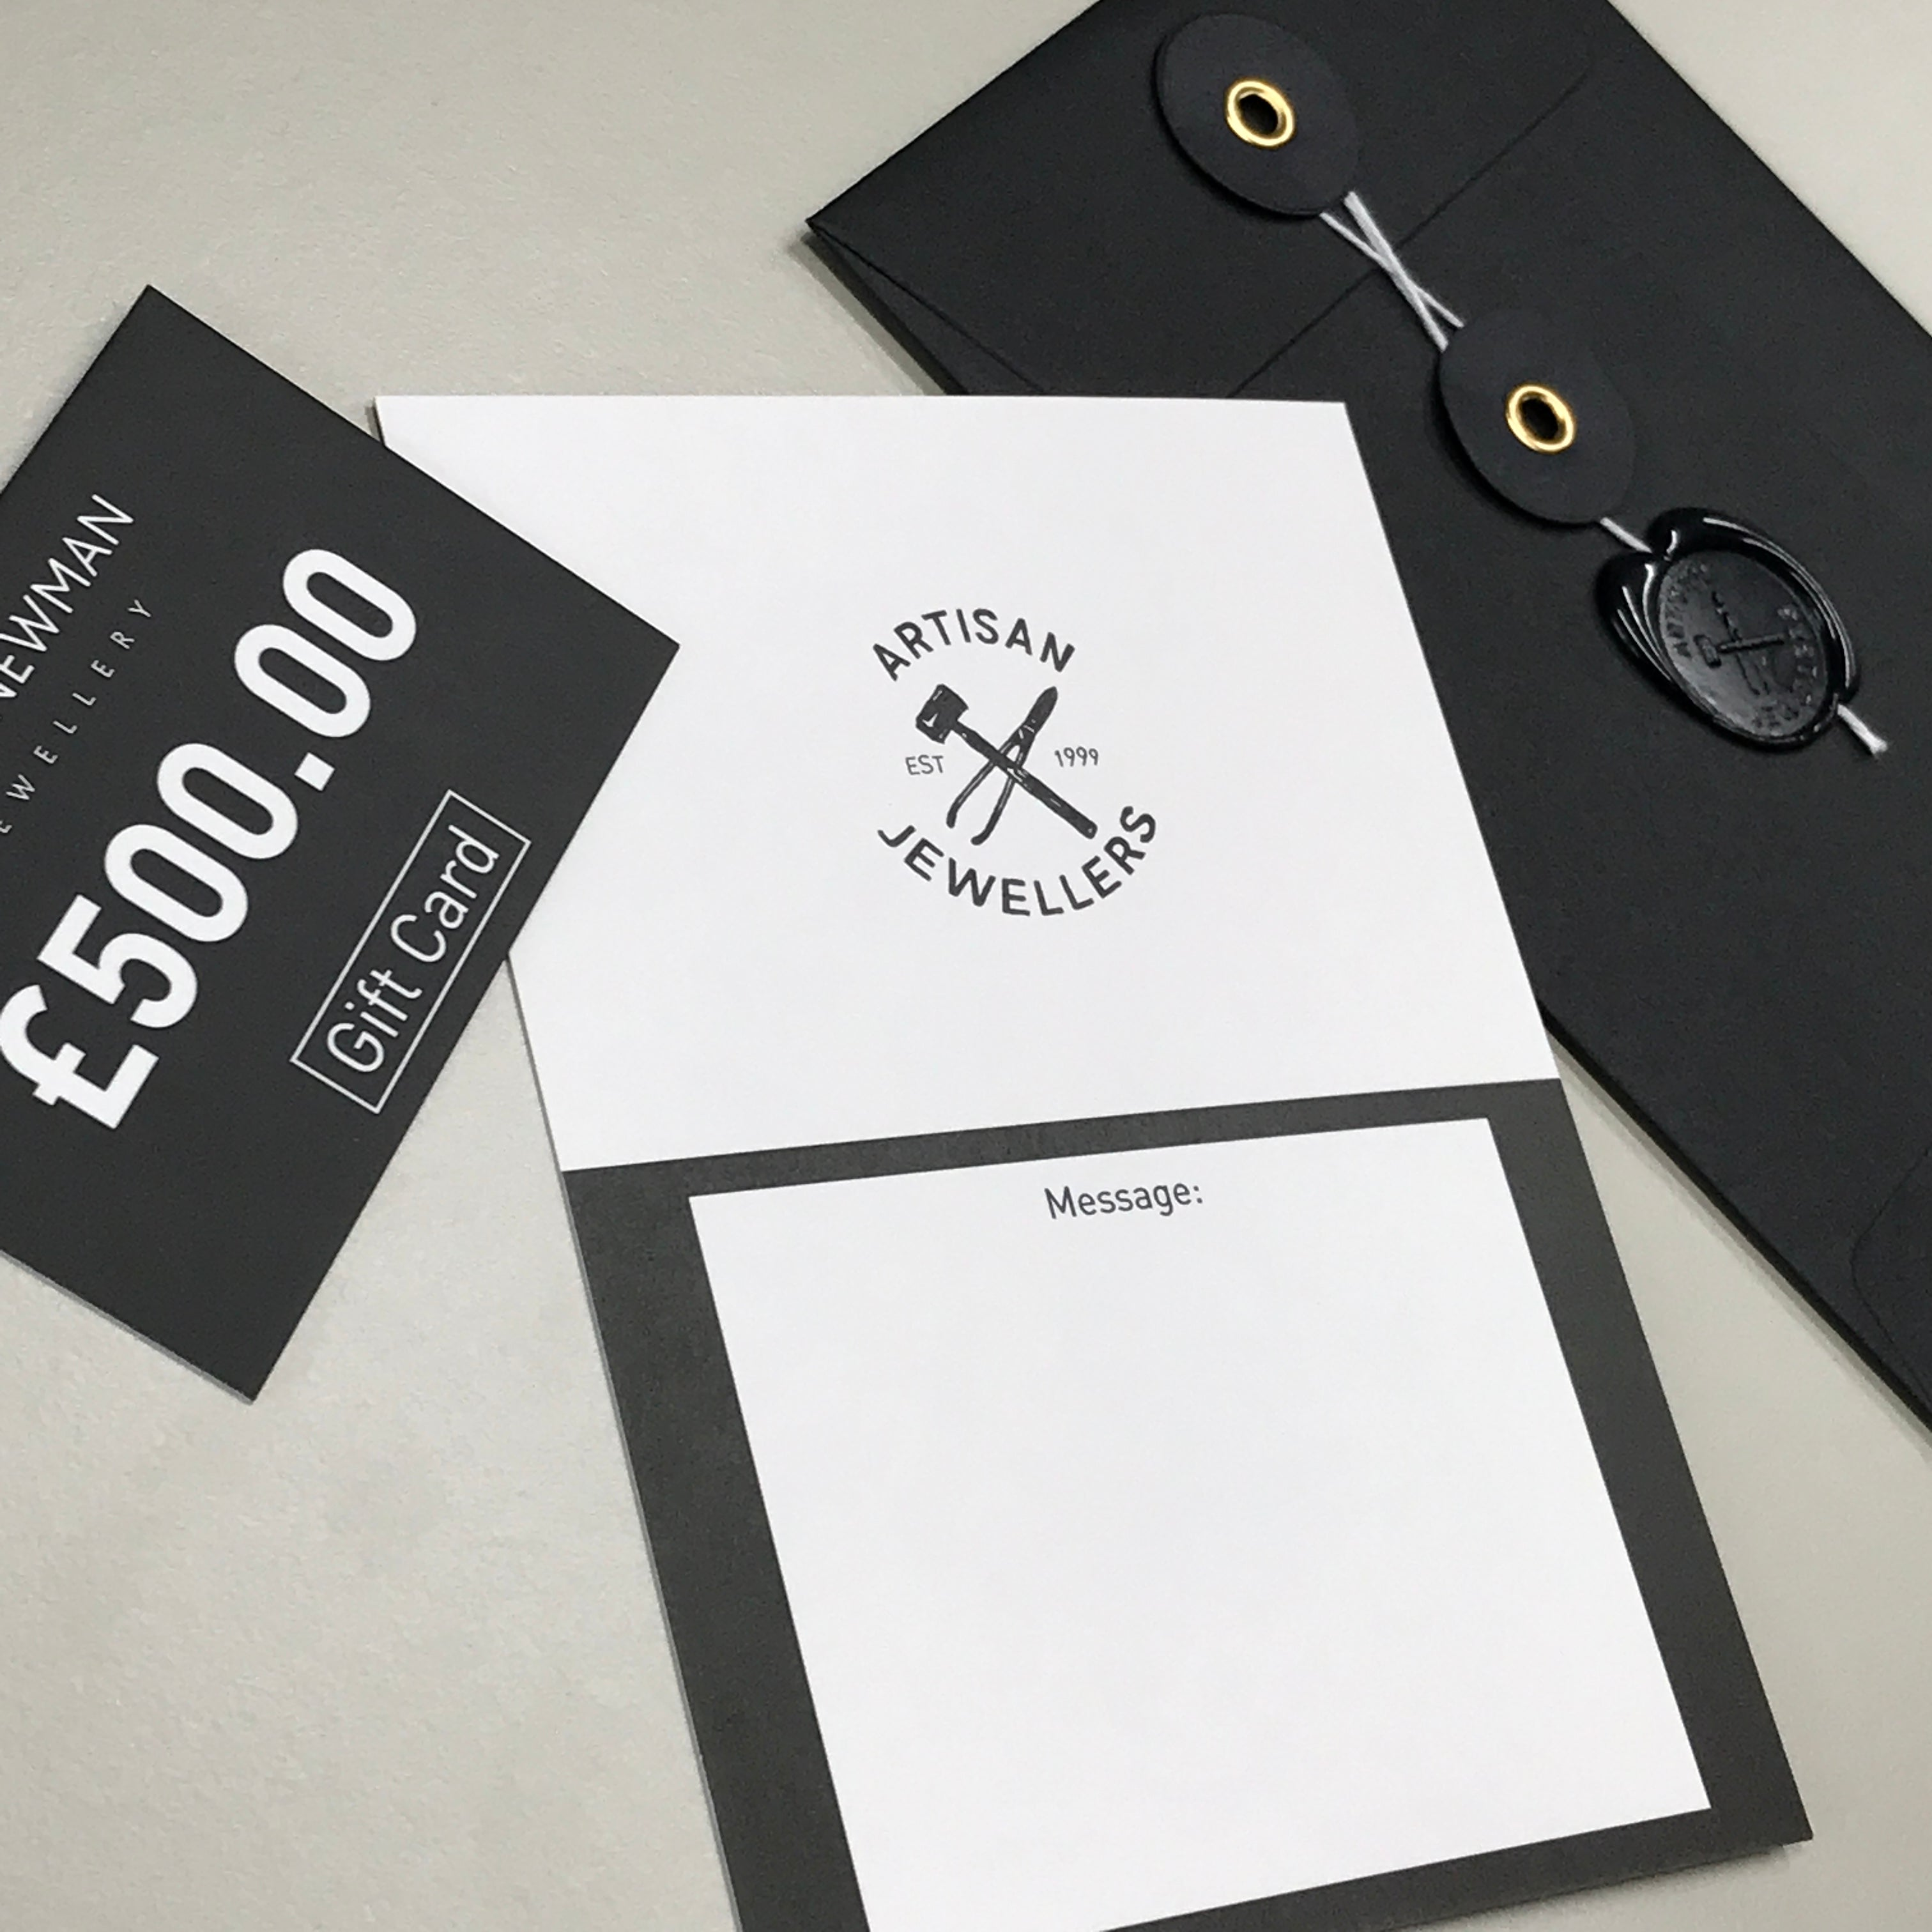 6. £500 Gift Card - James Newman Jewellery